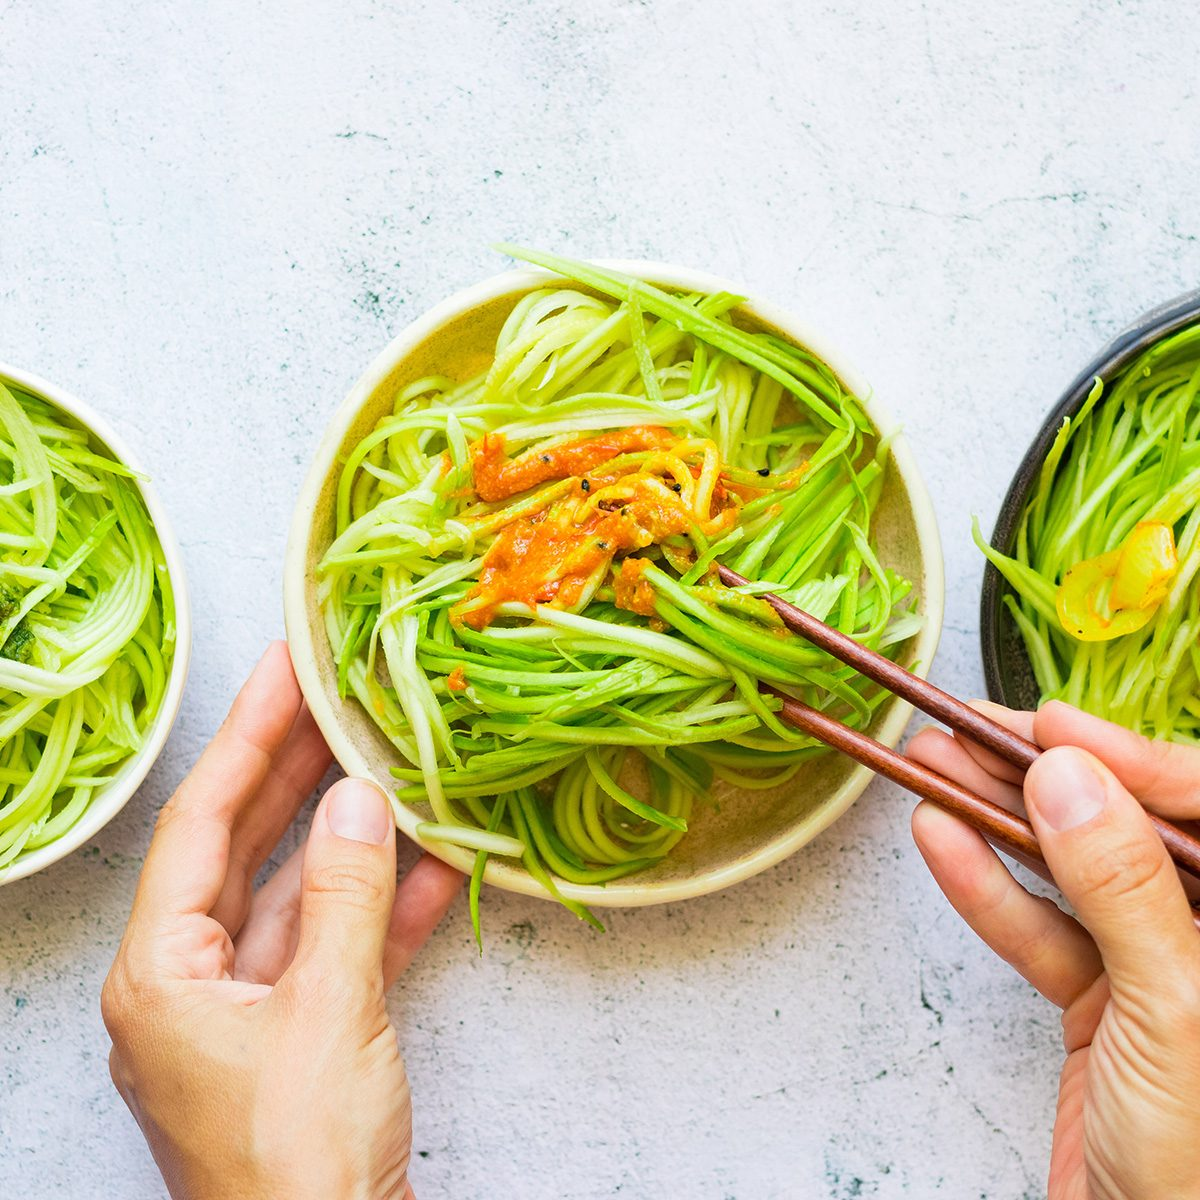 Homemade green zucchini spaghetti or pasta in bowl with chopsticks. Woman hands holds vegan, vegetarian healthy food.